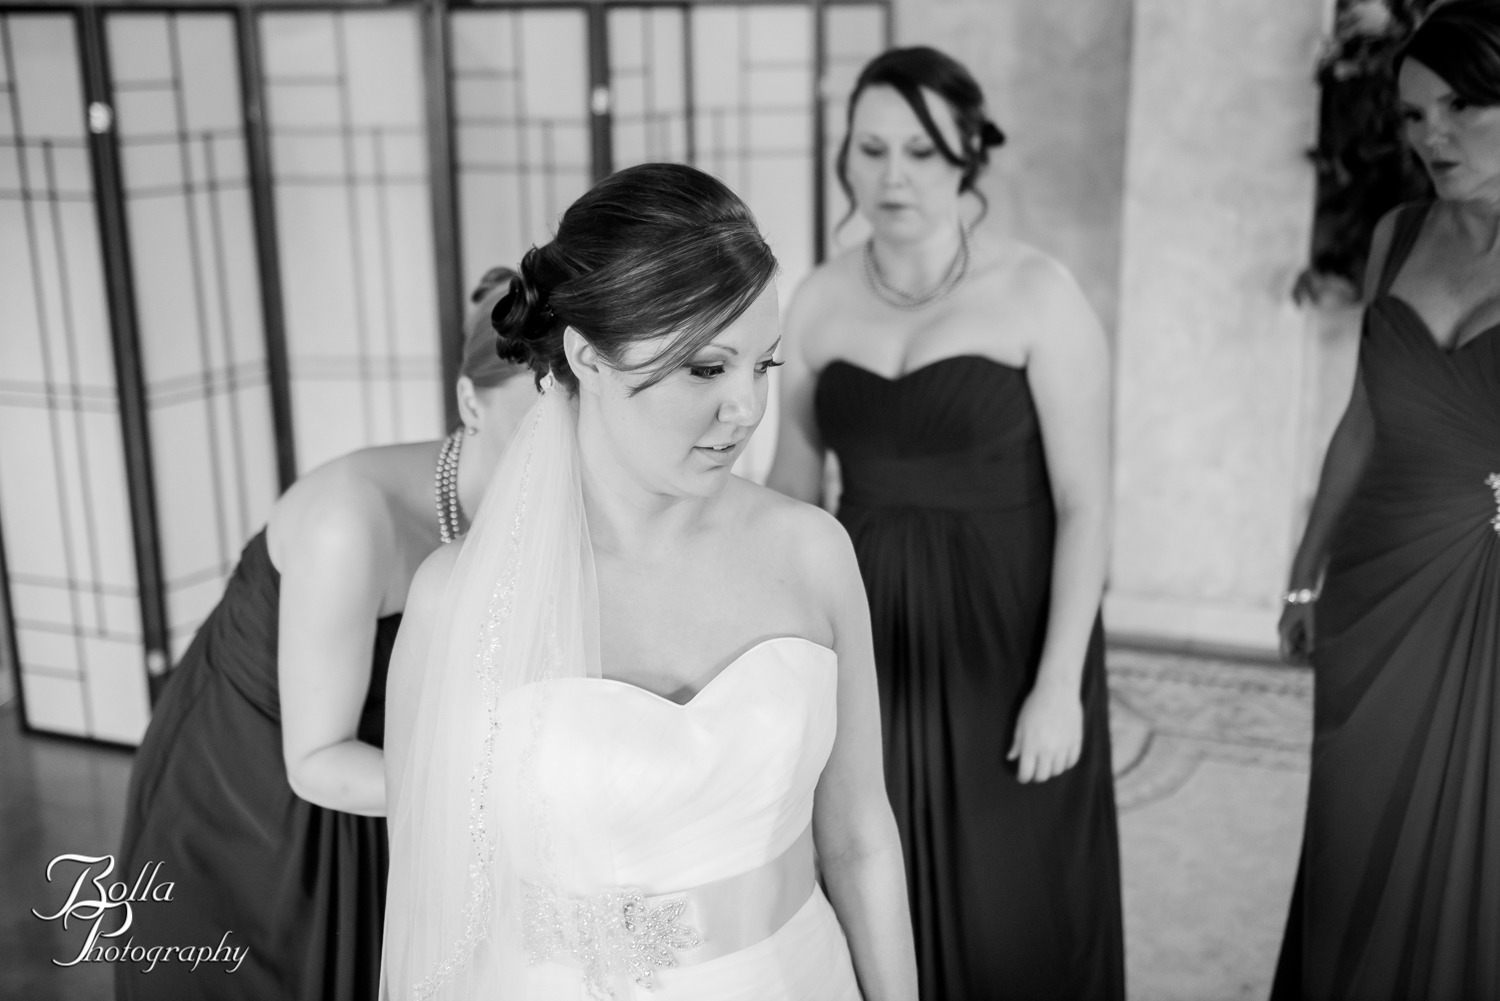 Bolla_Photography_St_Louis_wedding_photographer_Villa_Maire_Winery-0065.jpg